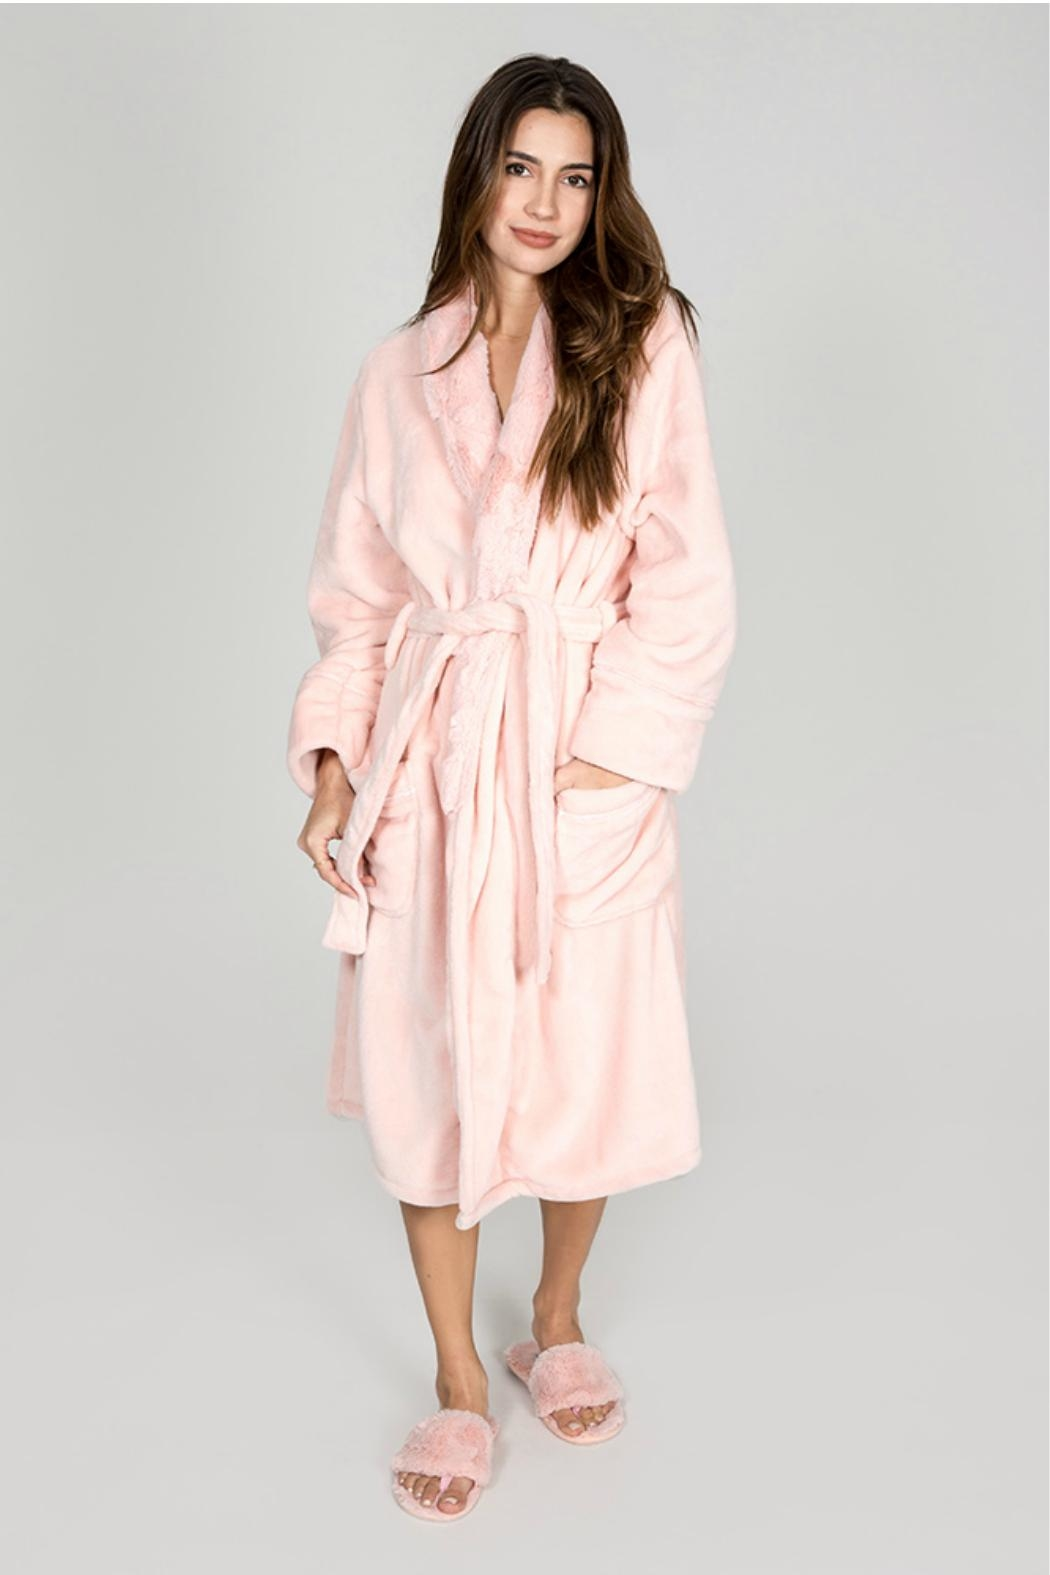 P.J. Salvage Pink Luxe Robe - Main Image